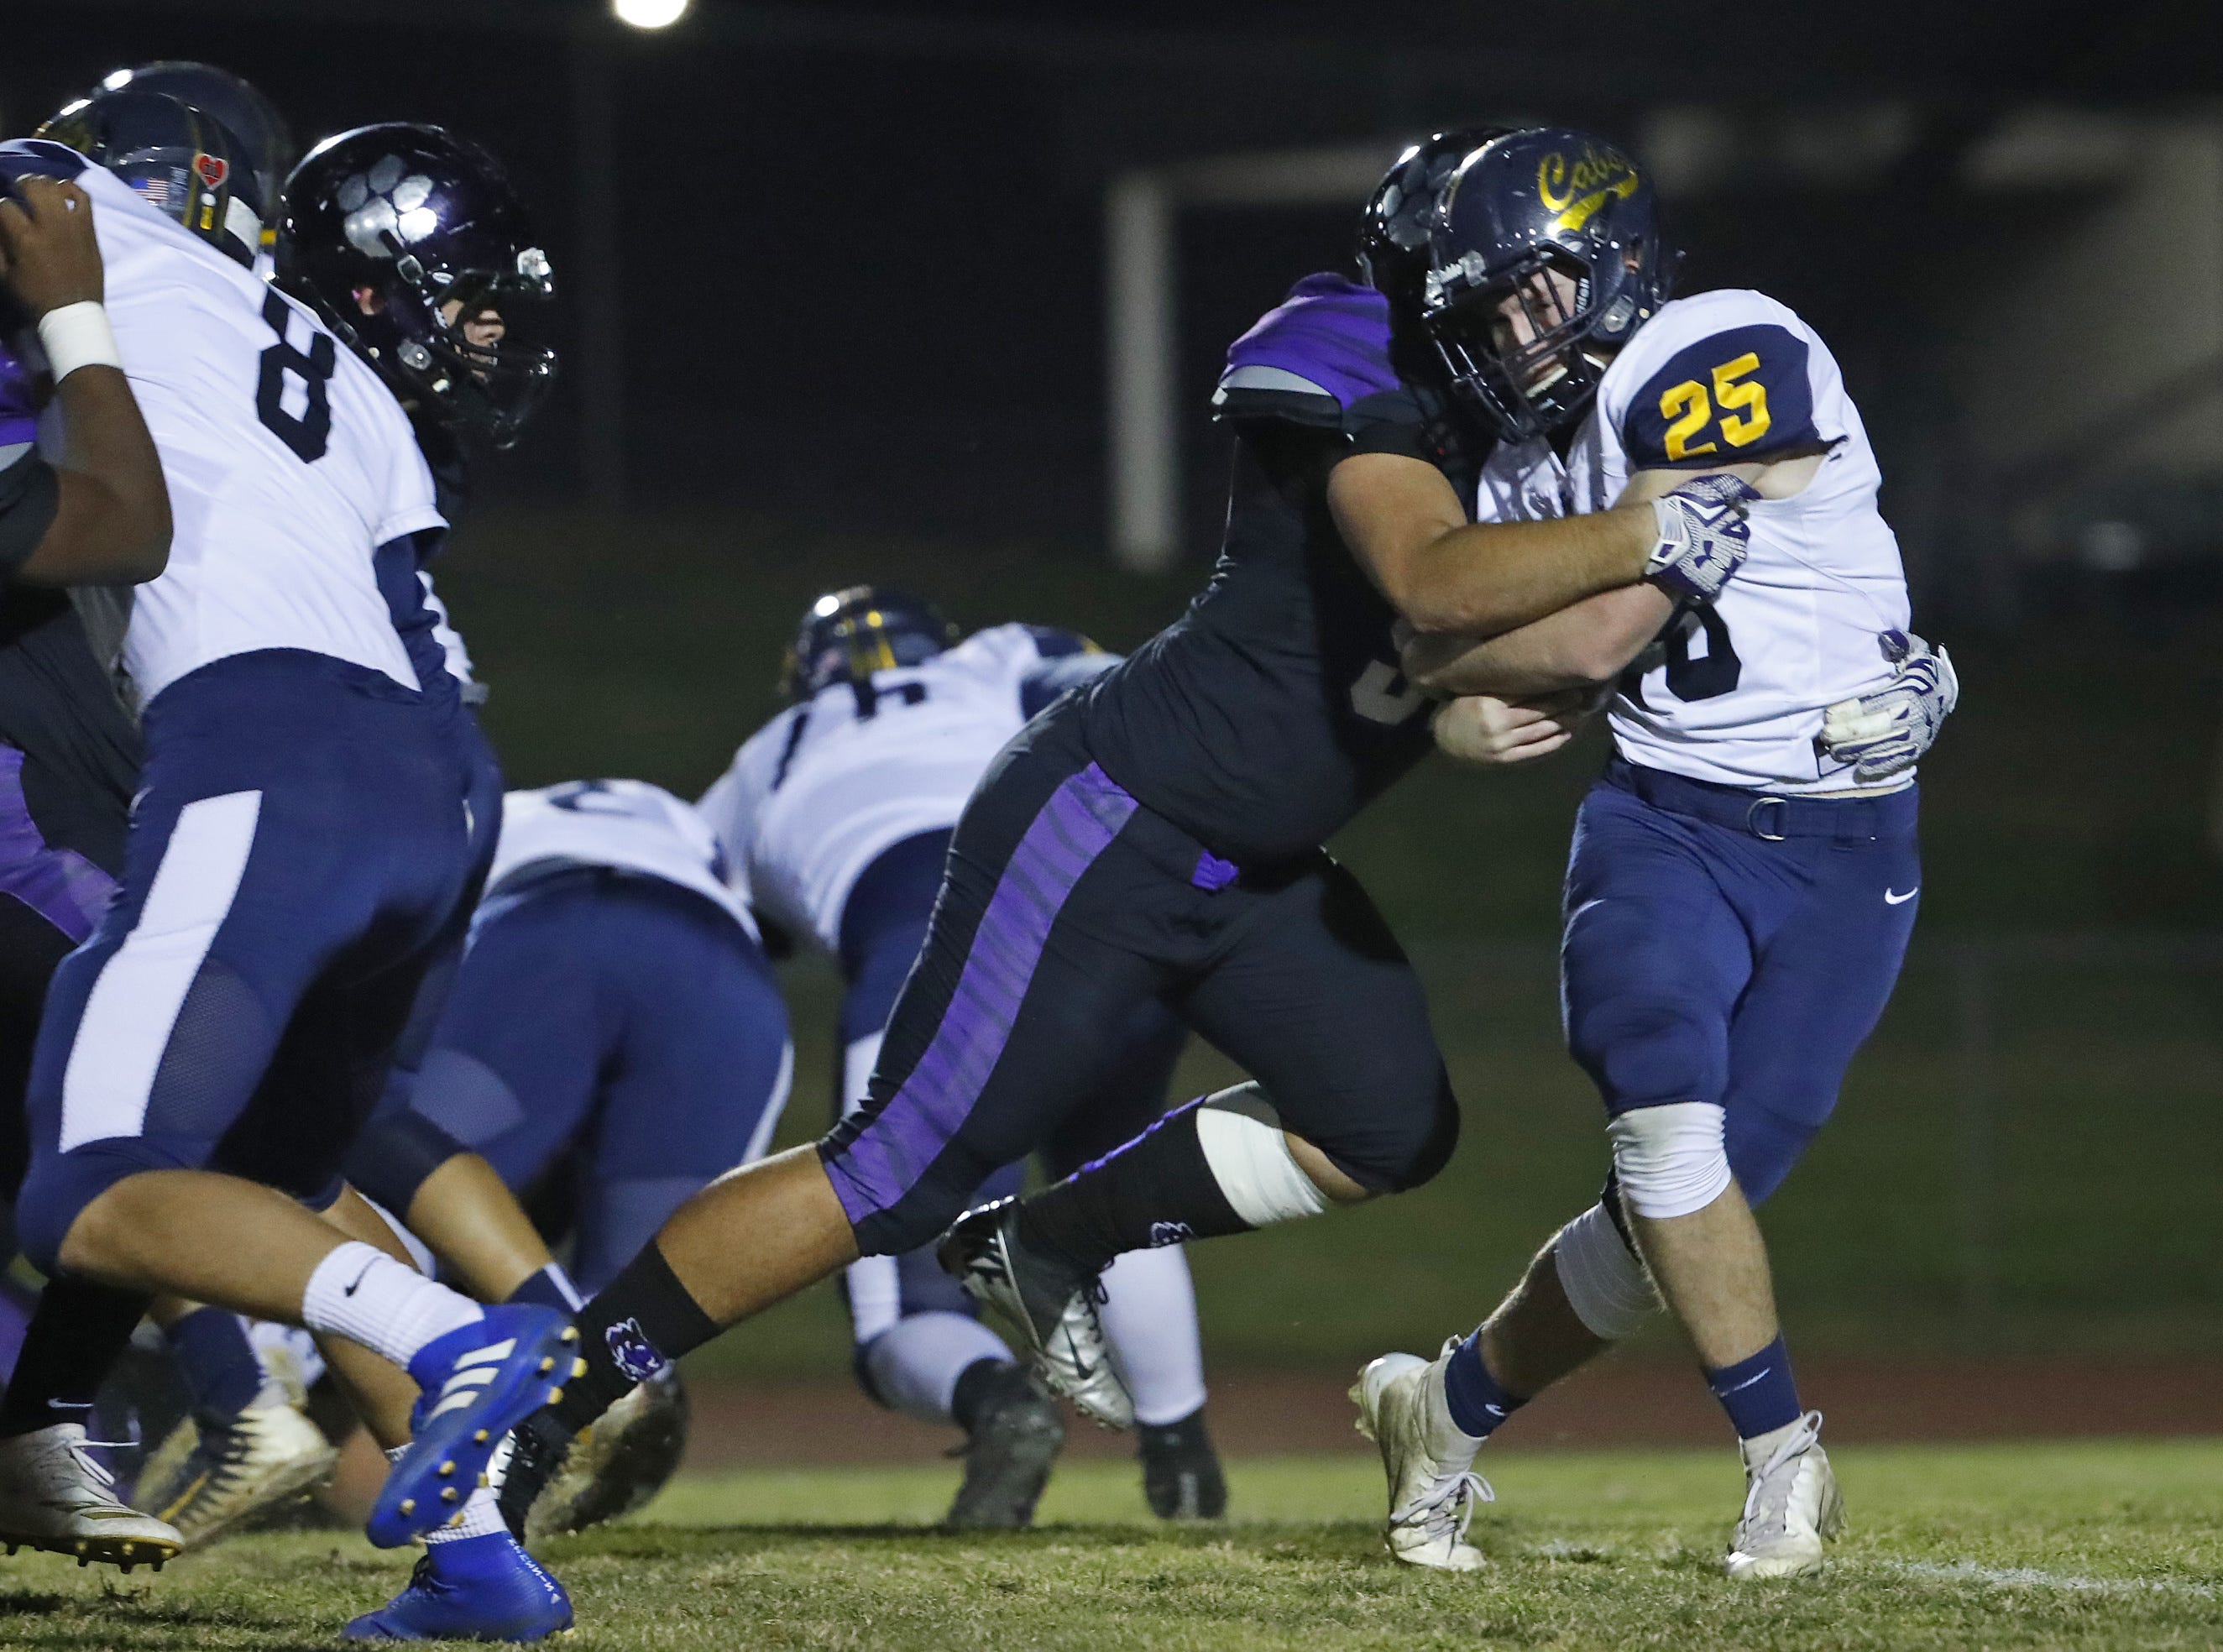 Millennium's Cristian Rodriguez (50) tackles Flowing Wells' Blake Bishop (25) during the first round of the AIA State Football Playoffs at Millennium High School in Goodyear, Ariz. on November 2, 2018.